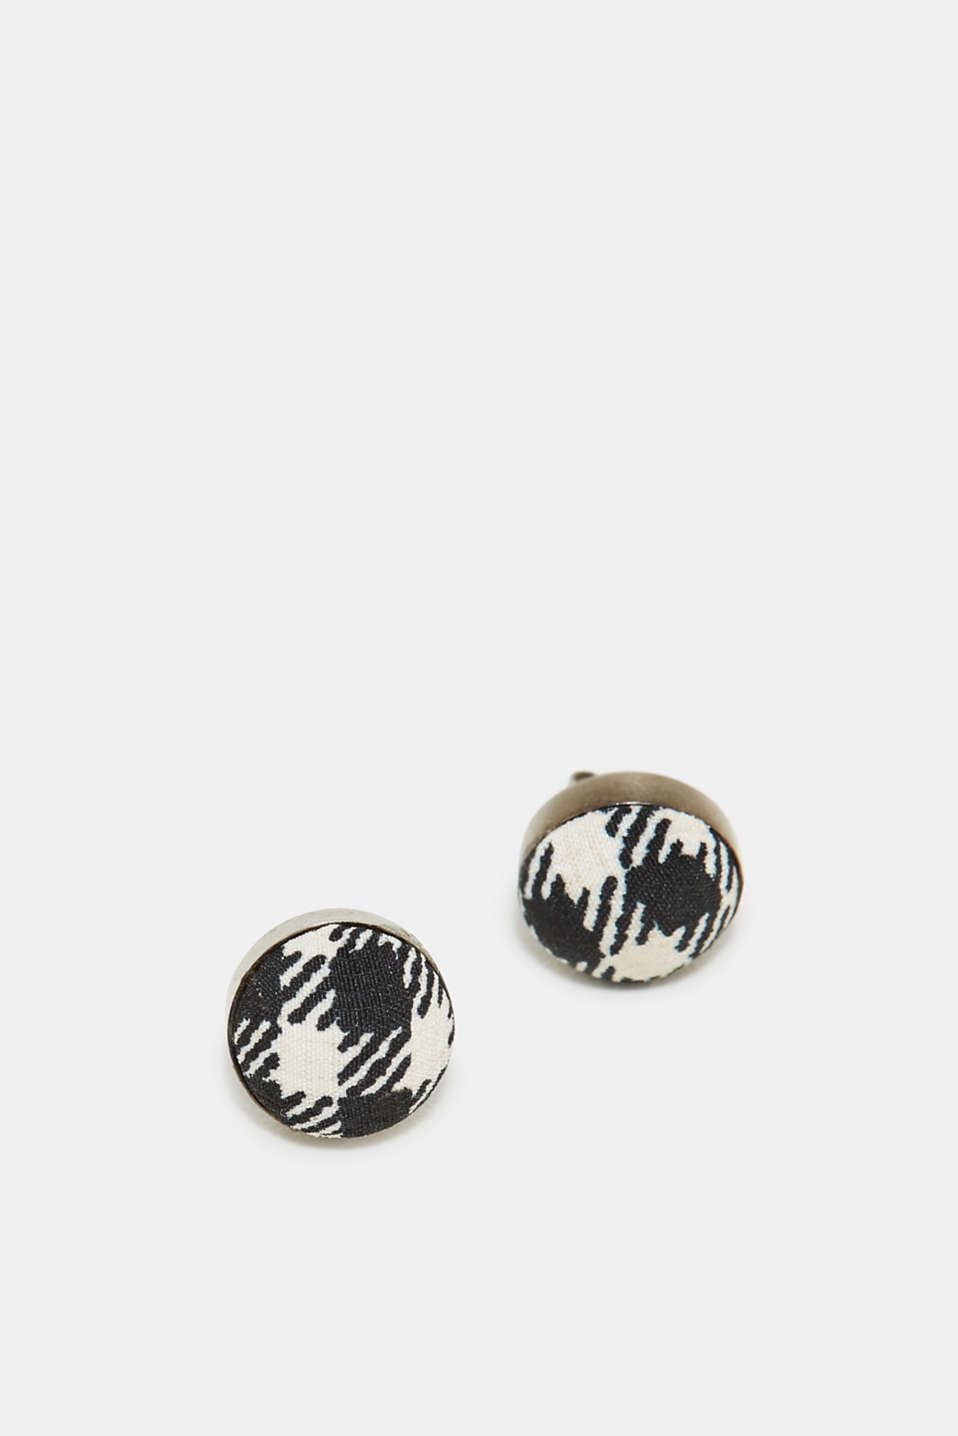 Esprit - Stud earrings with a check pattern